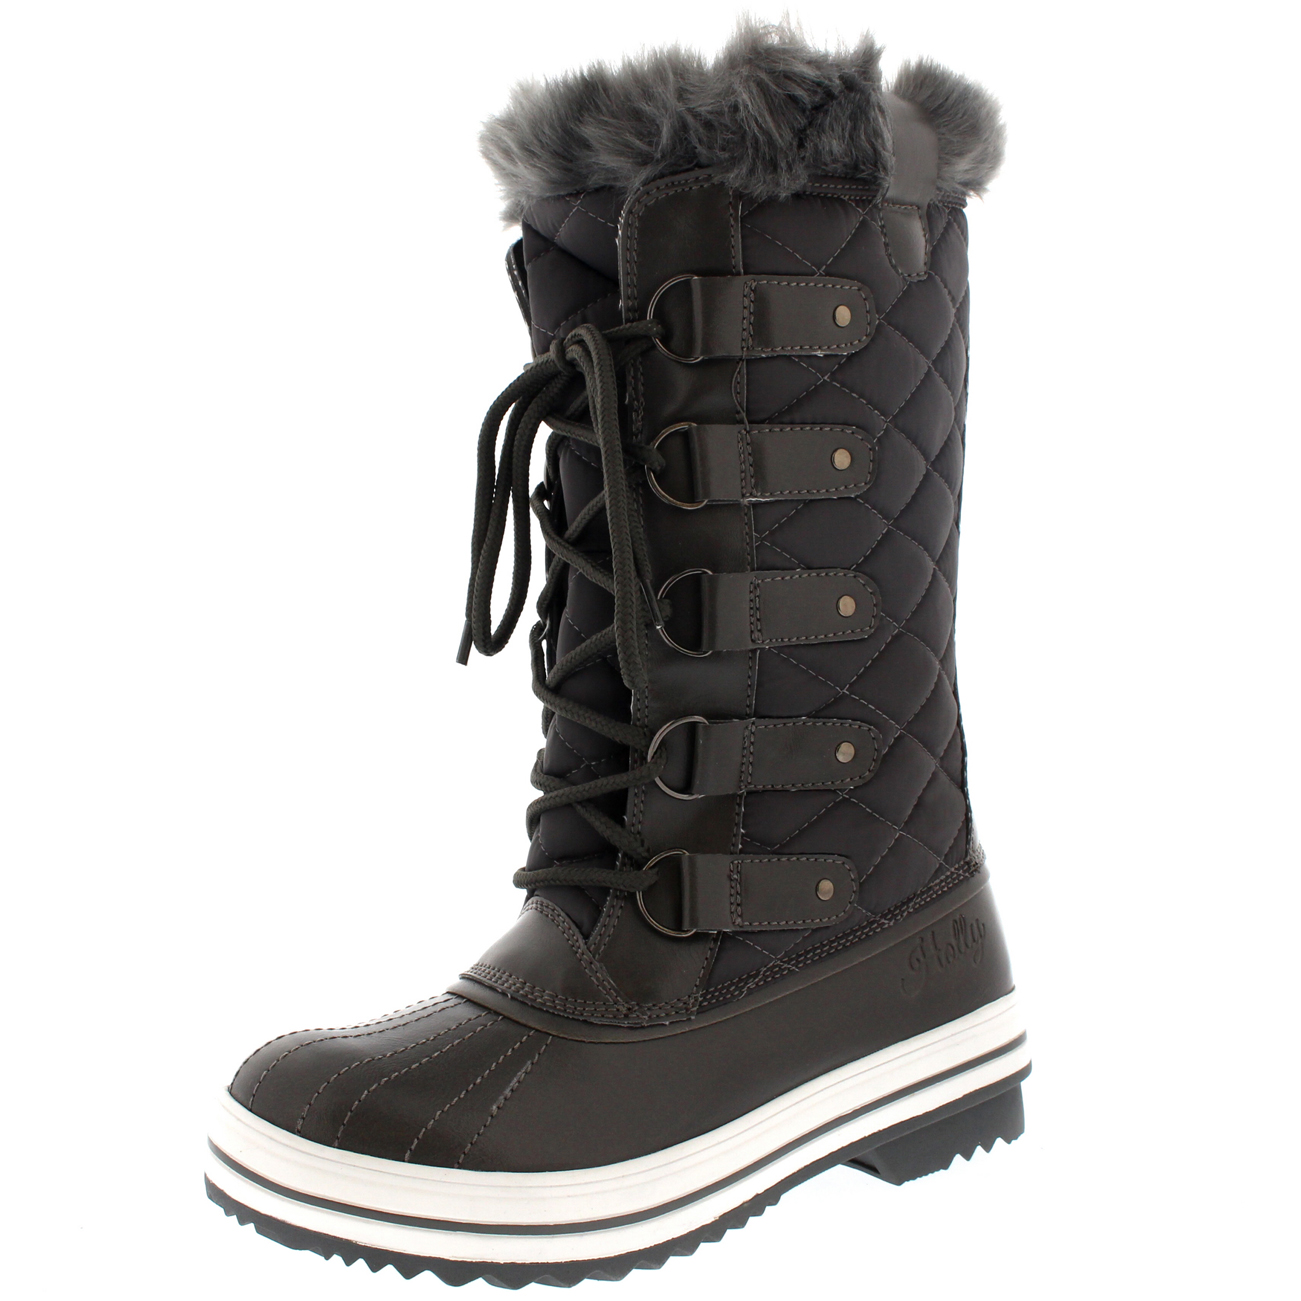 Ladies Snow Boot Nylon Tall Winter Waterproof Fur Lined